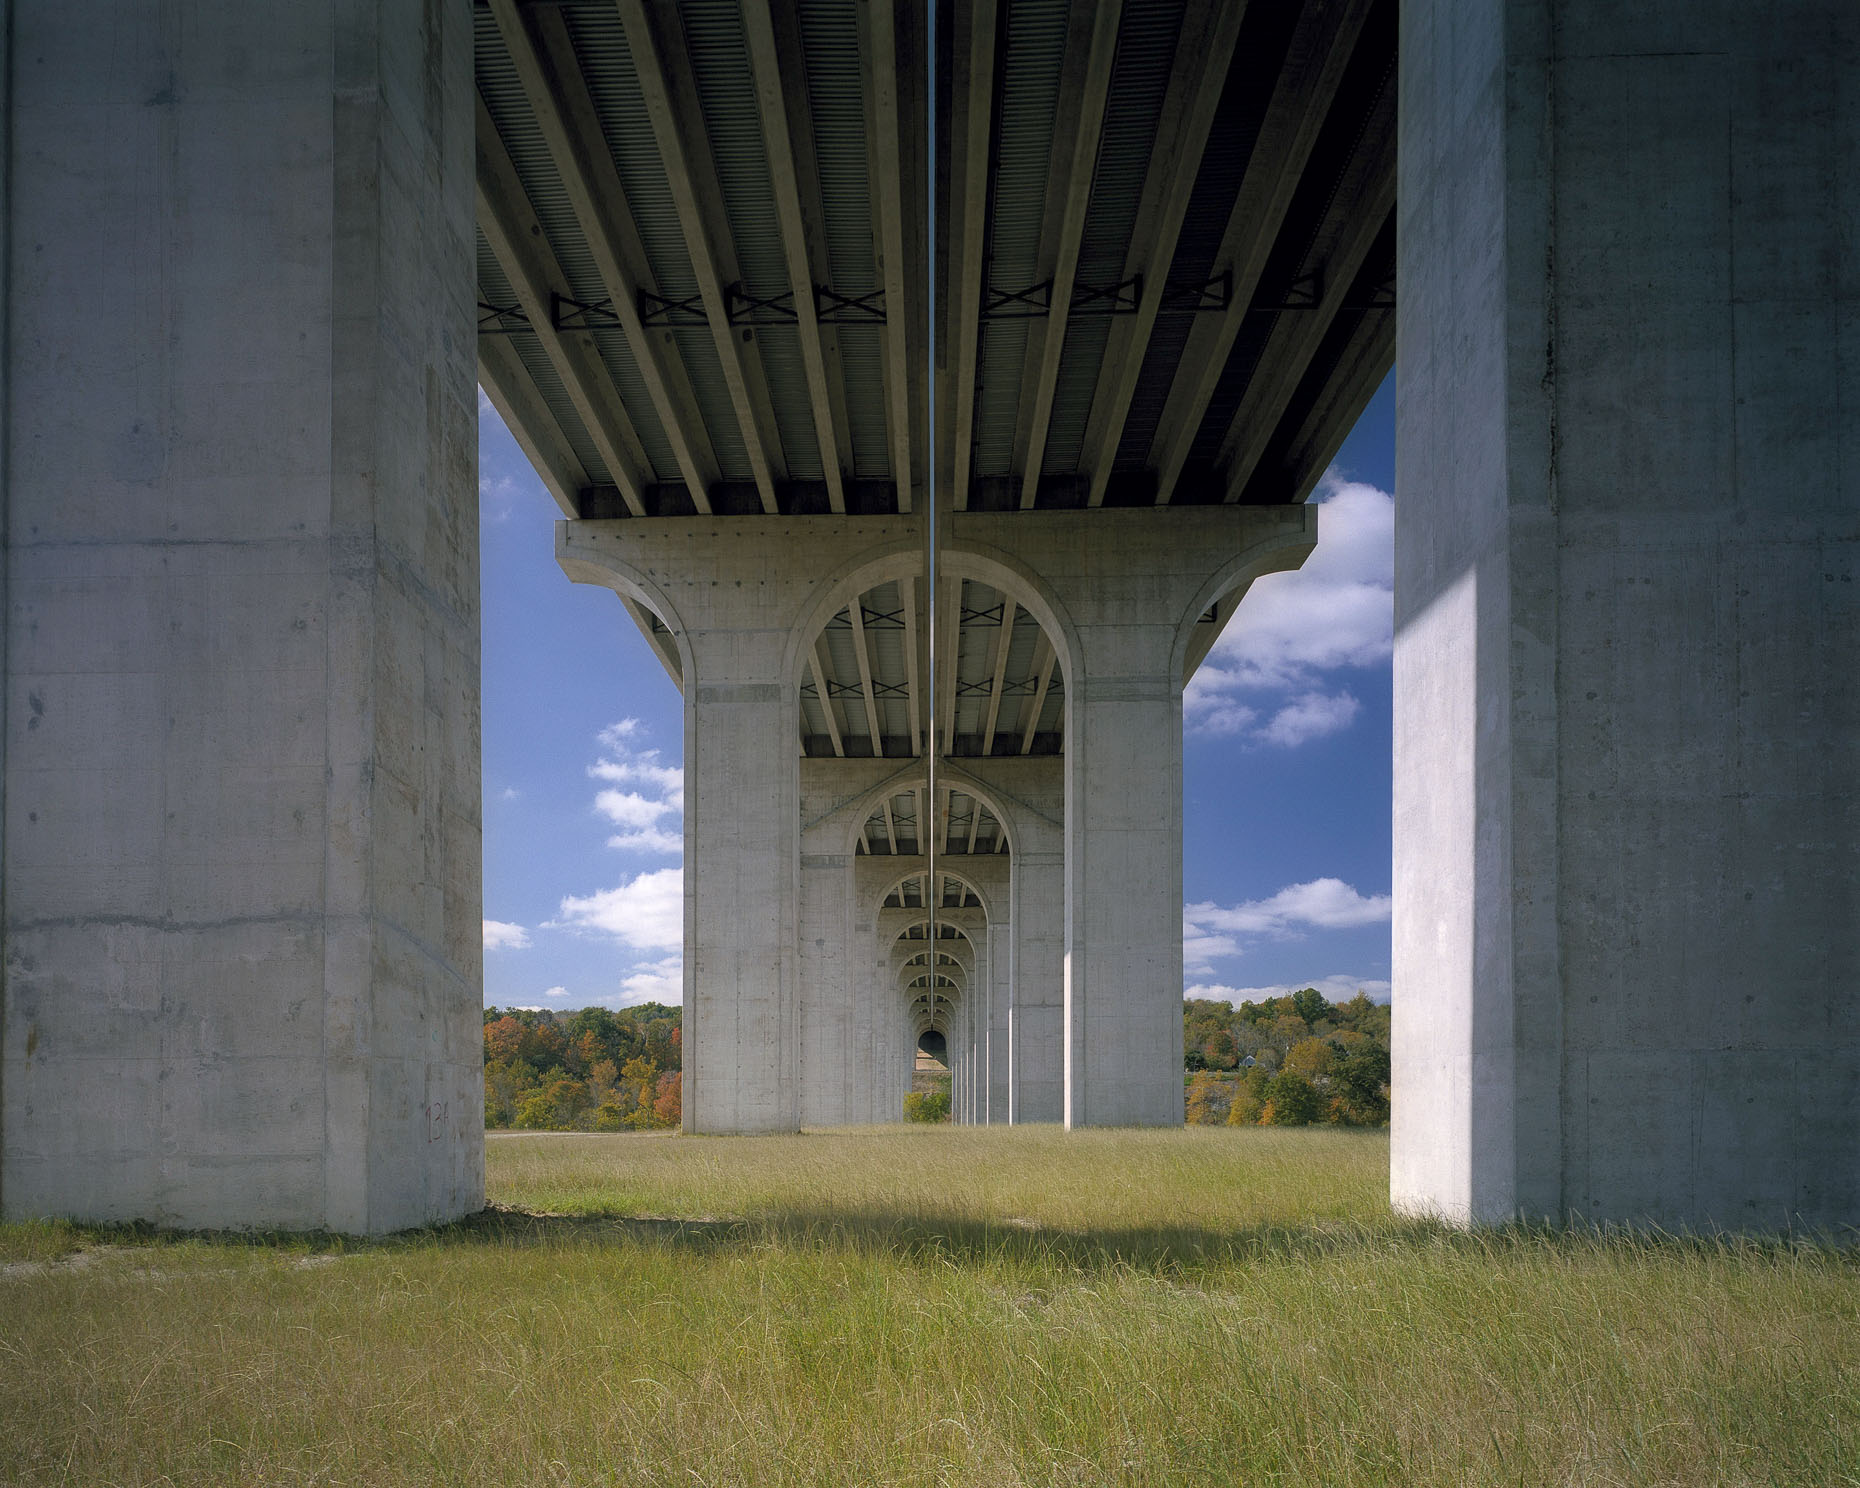 US I-80 Ohio Turnpike Bridge by HNTB photographed by Brad Feinknopf based in Columbus, Ohio